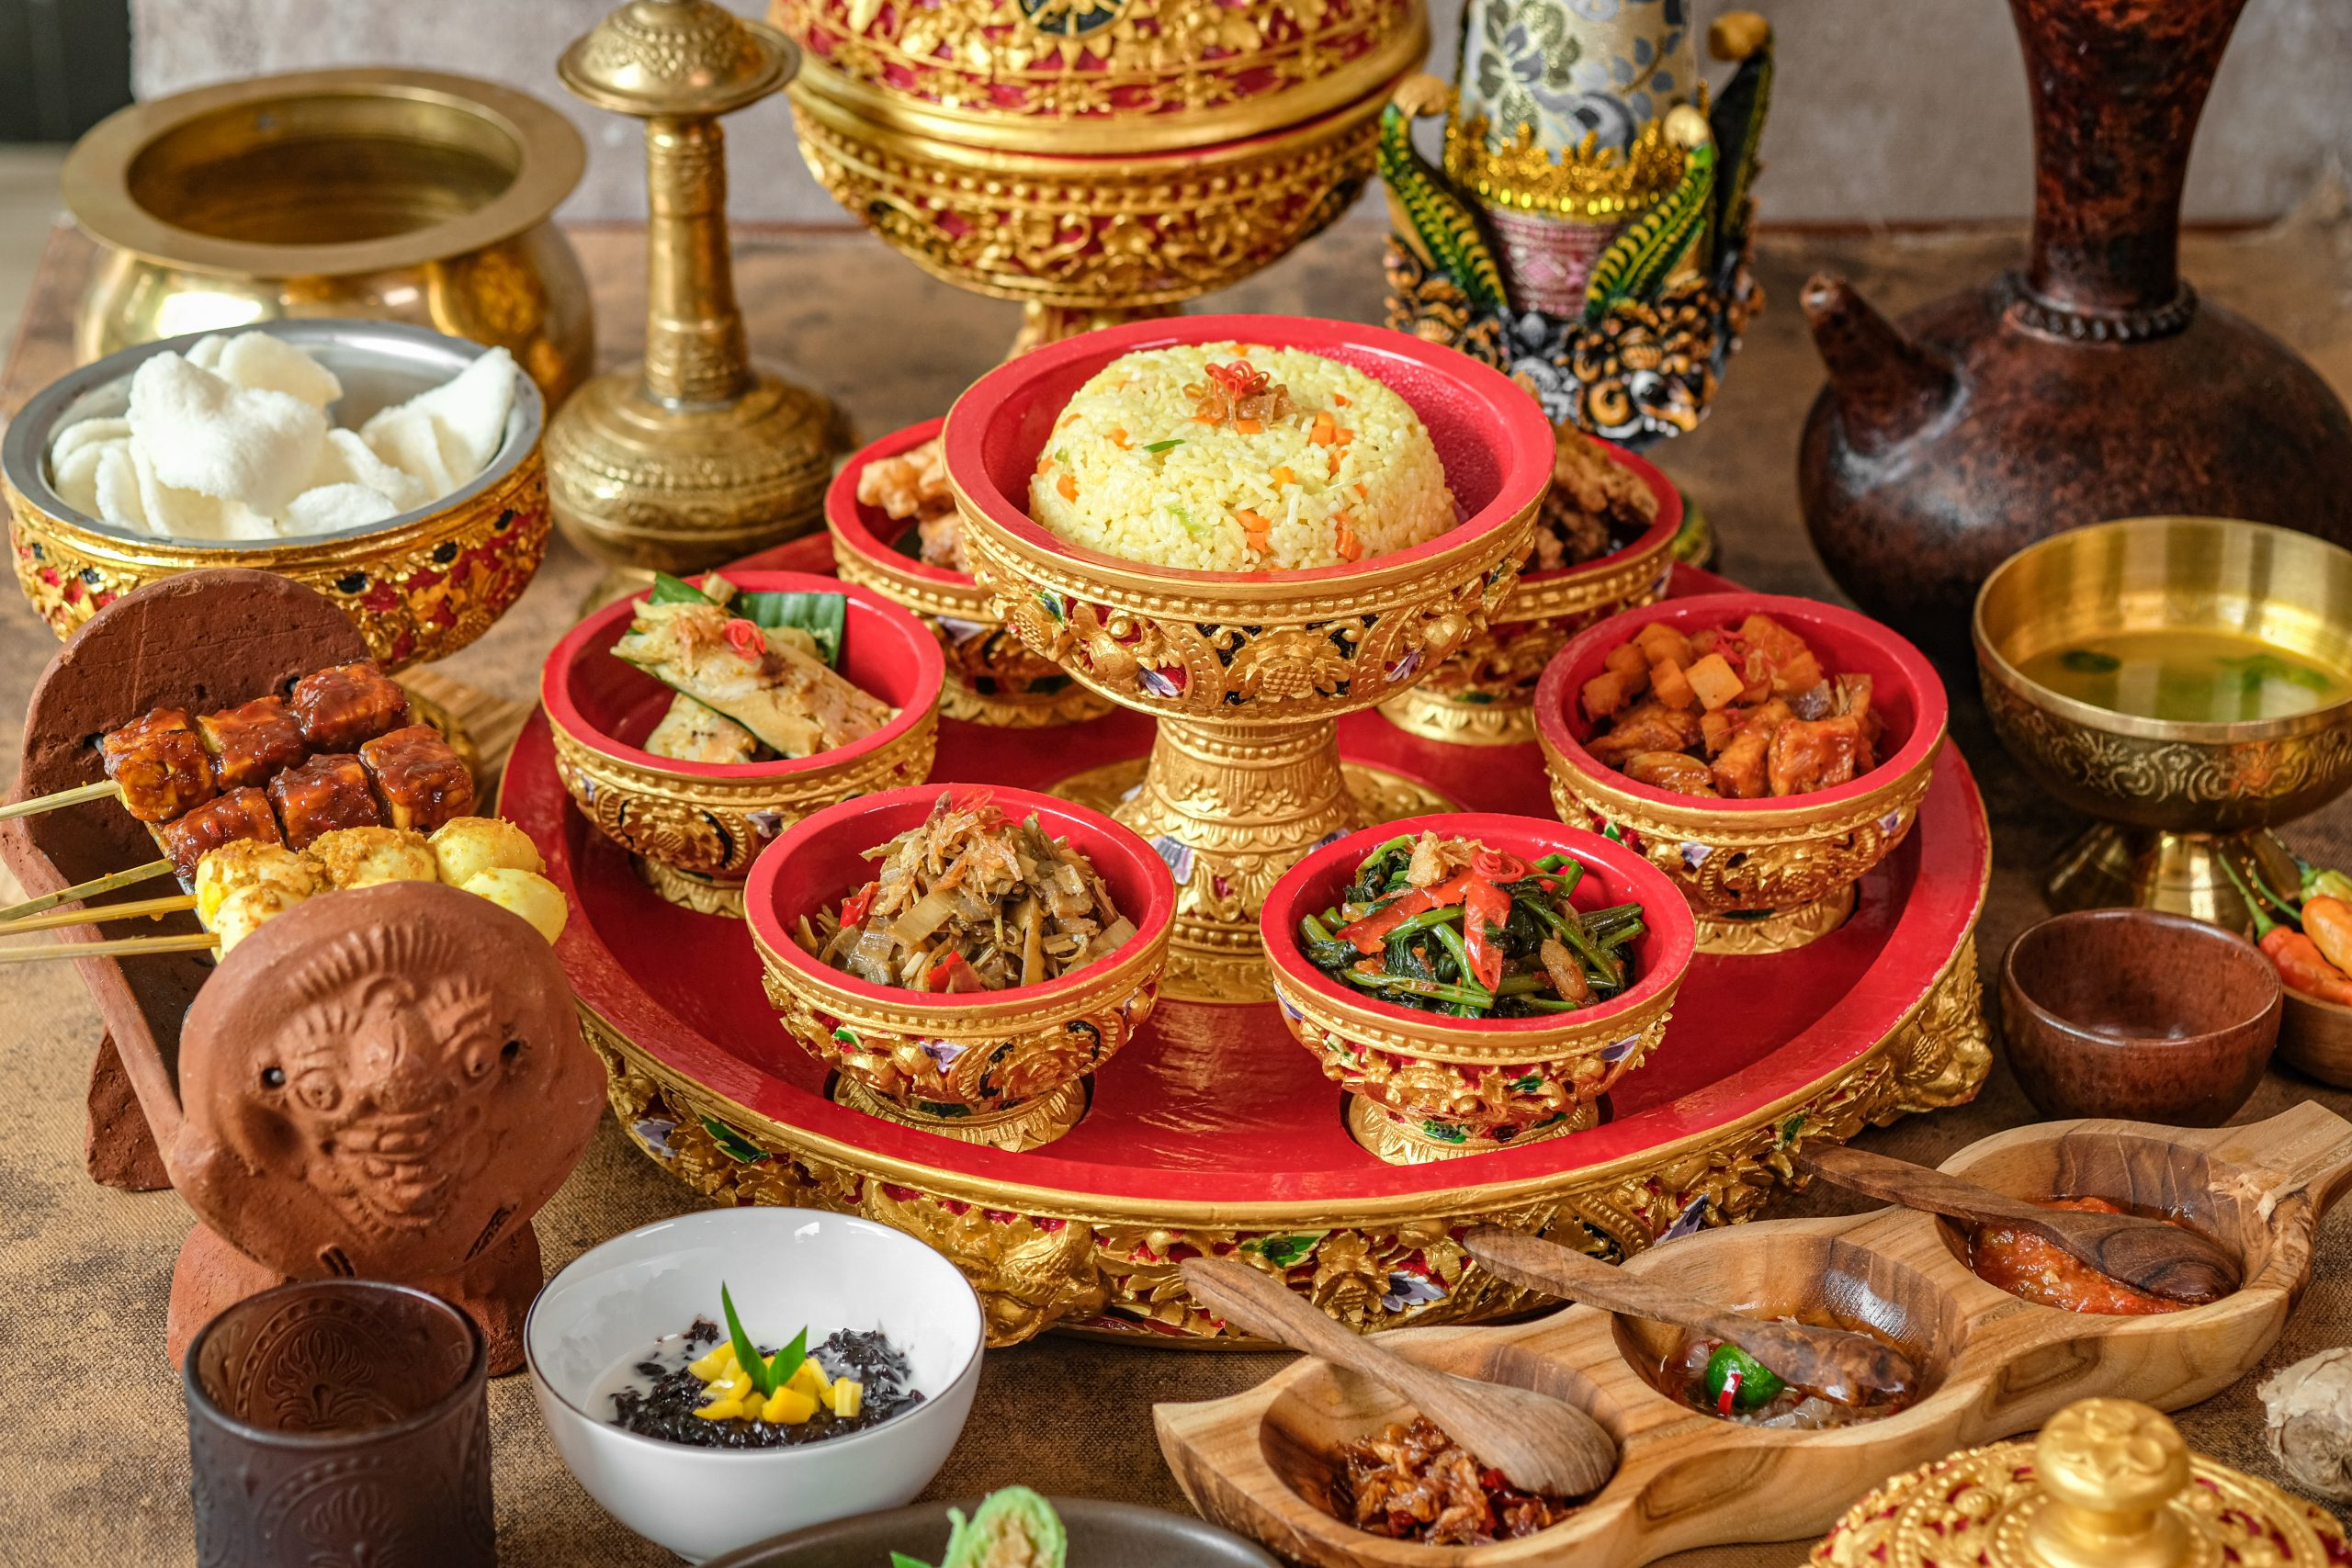 http://highend-traveller.com/royal-balinese-rijsttafel-at-dapur-raja/